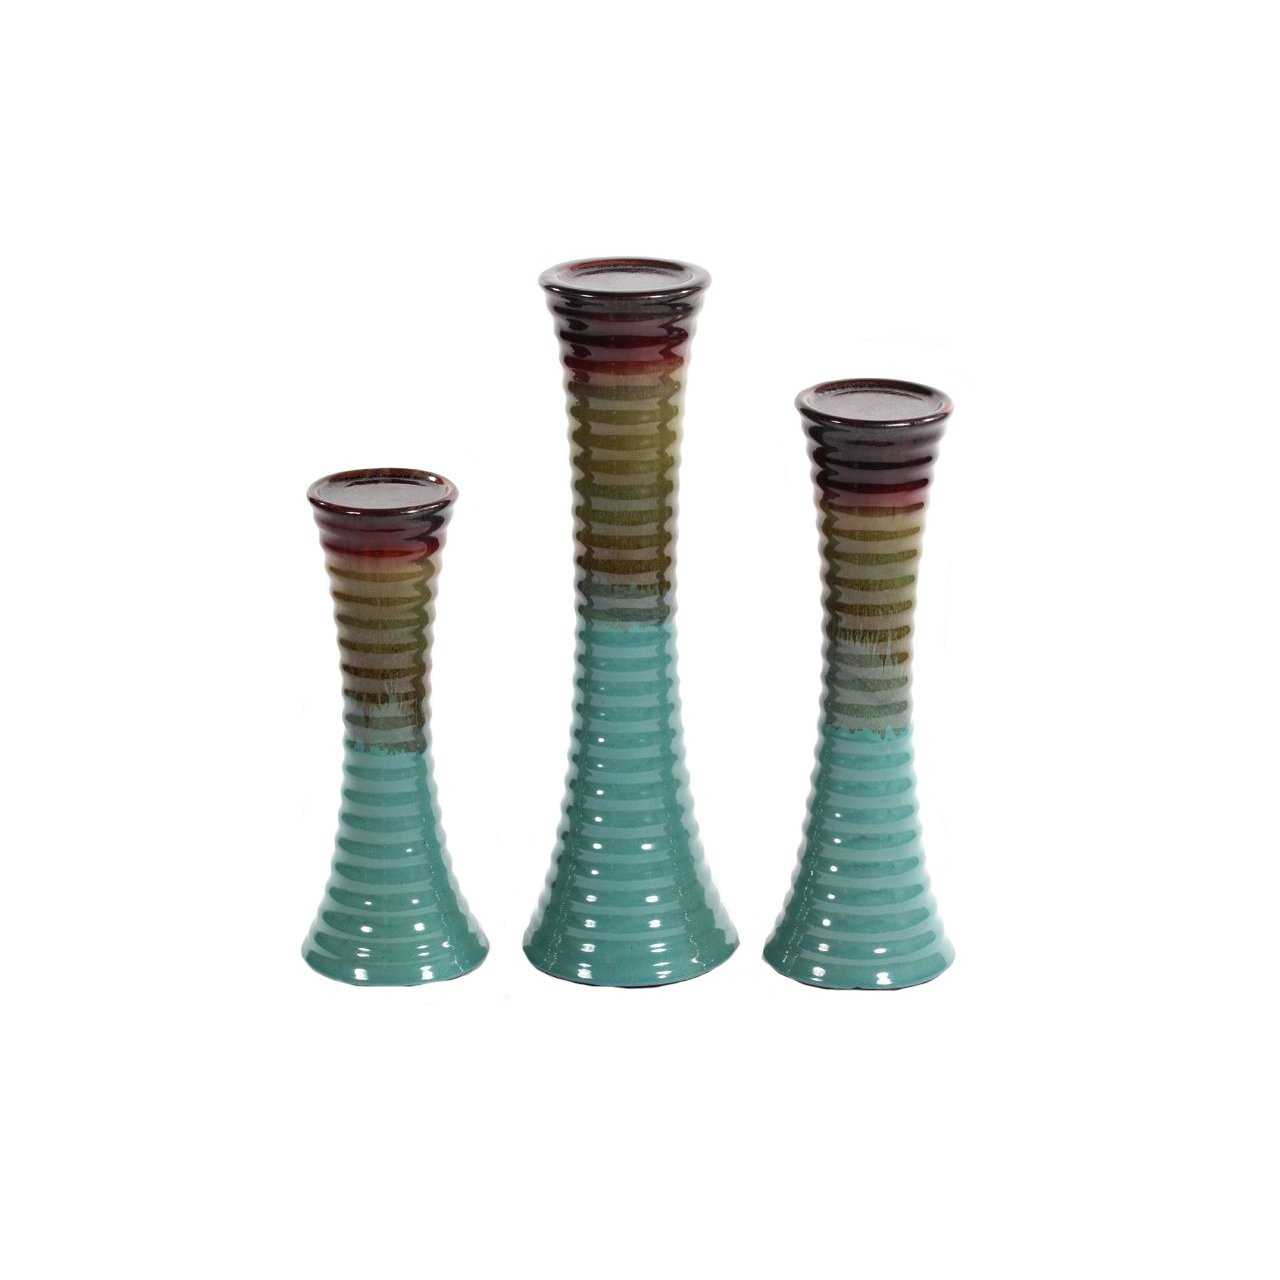 Essentials Décor Entrada Collection 3-Piece Ceramic Candle Holder Set, Turquoise and Brown